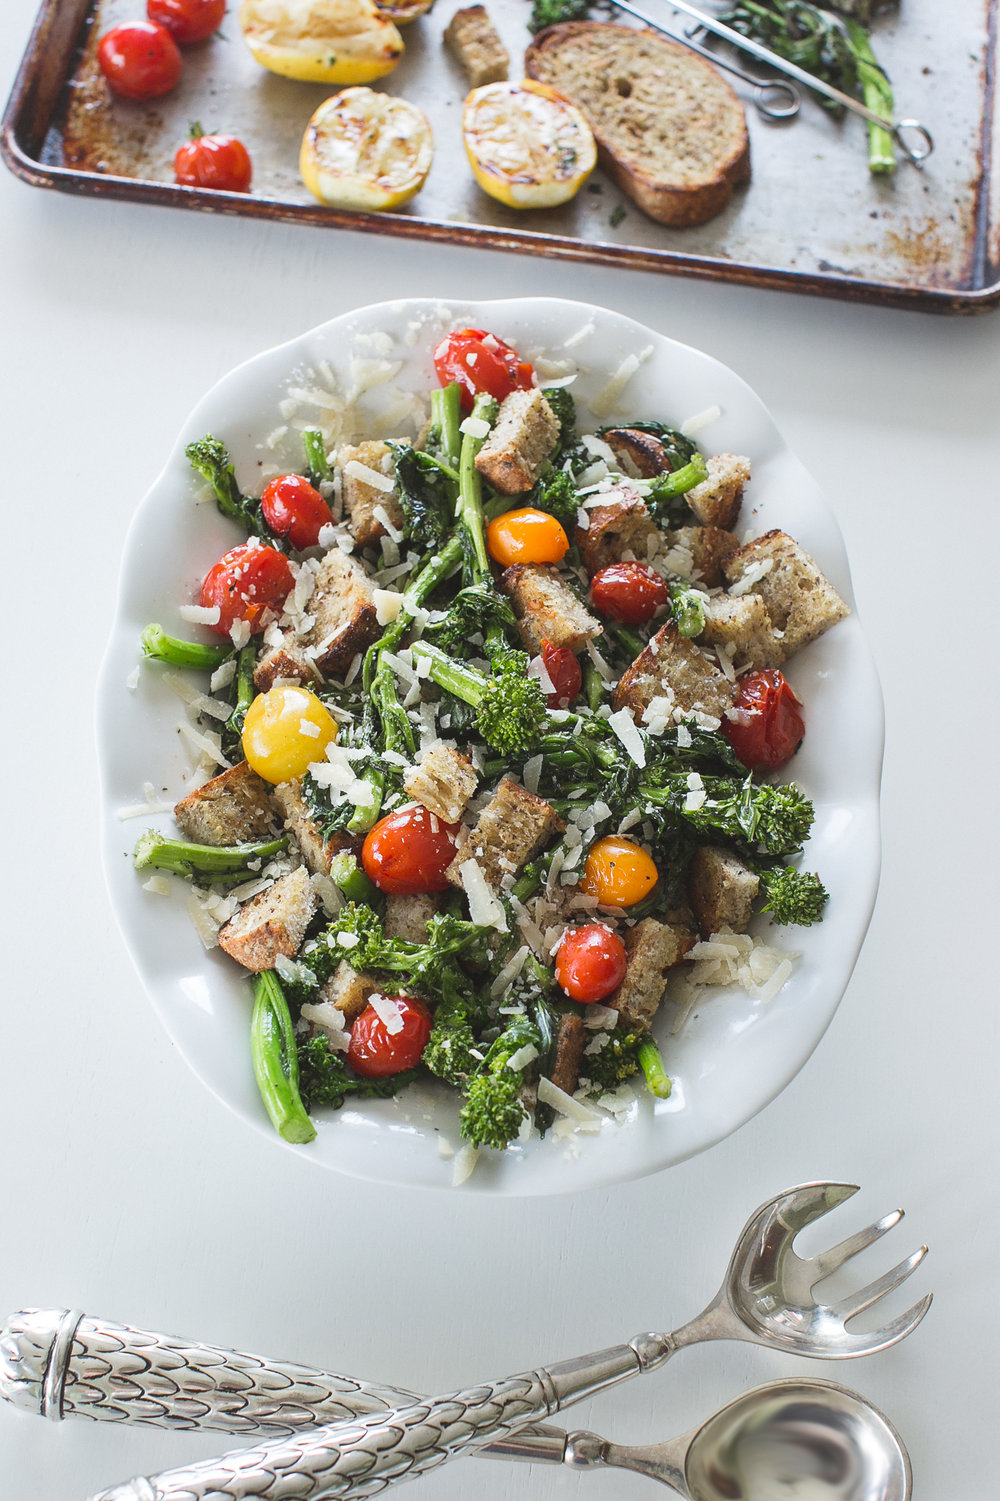 Grilled Bread Salad with Broccoli Rabe, Cherry Tomatoes, and Parmigiano Reggiano Cheese